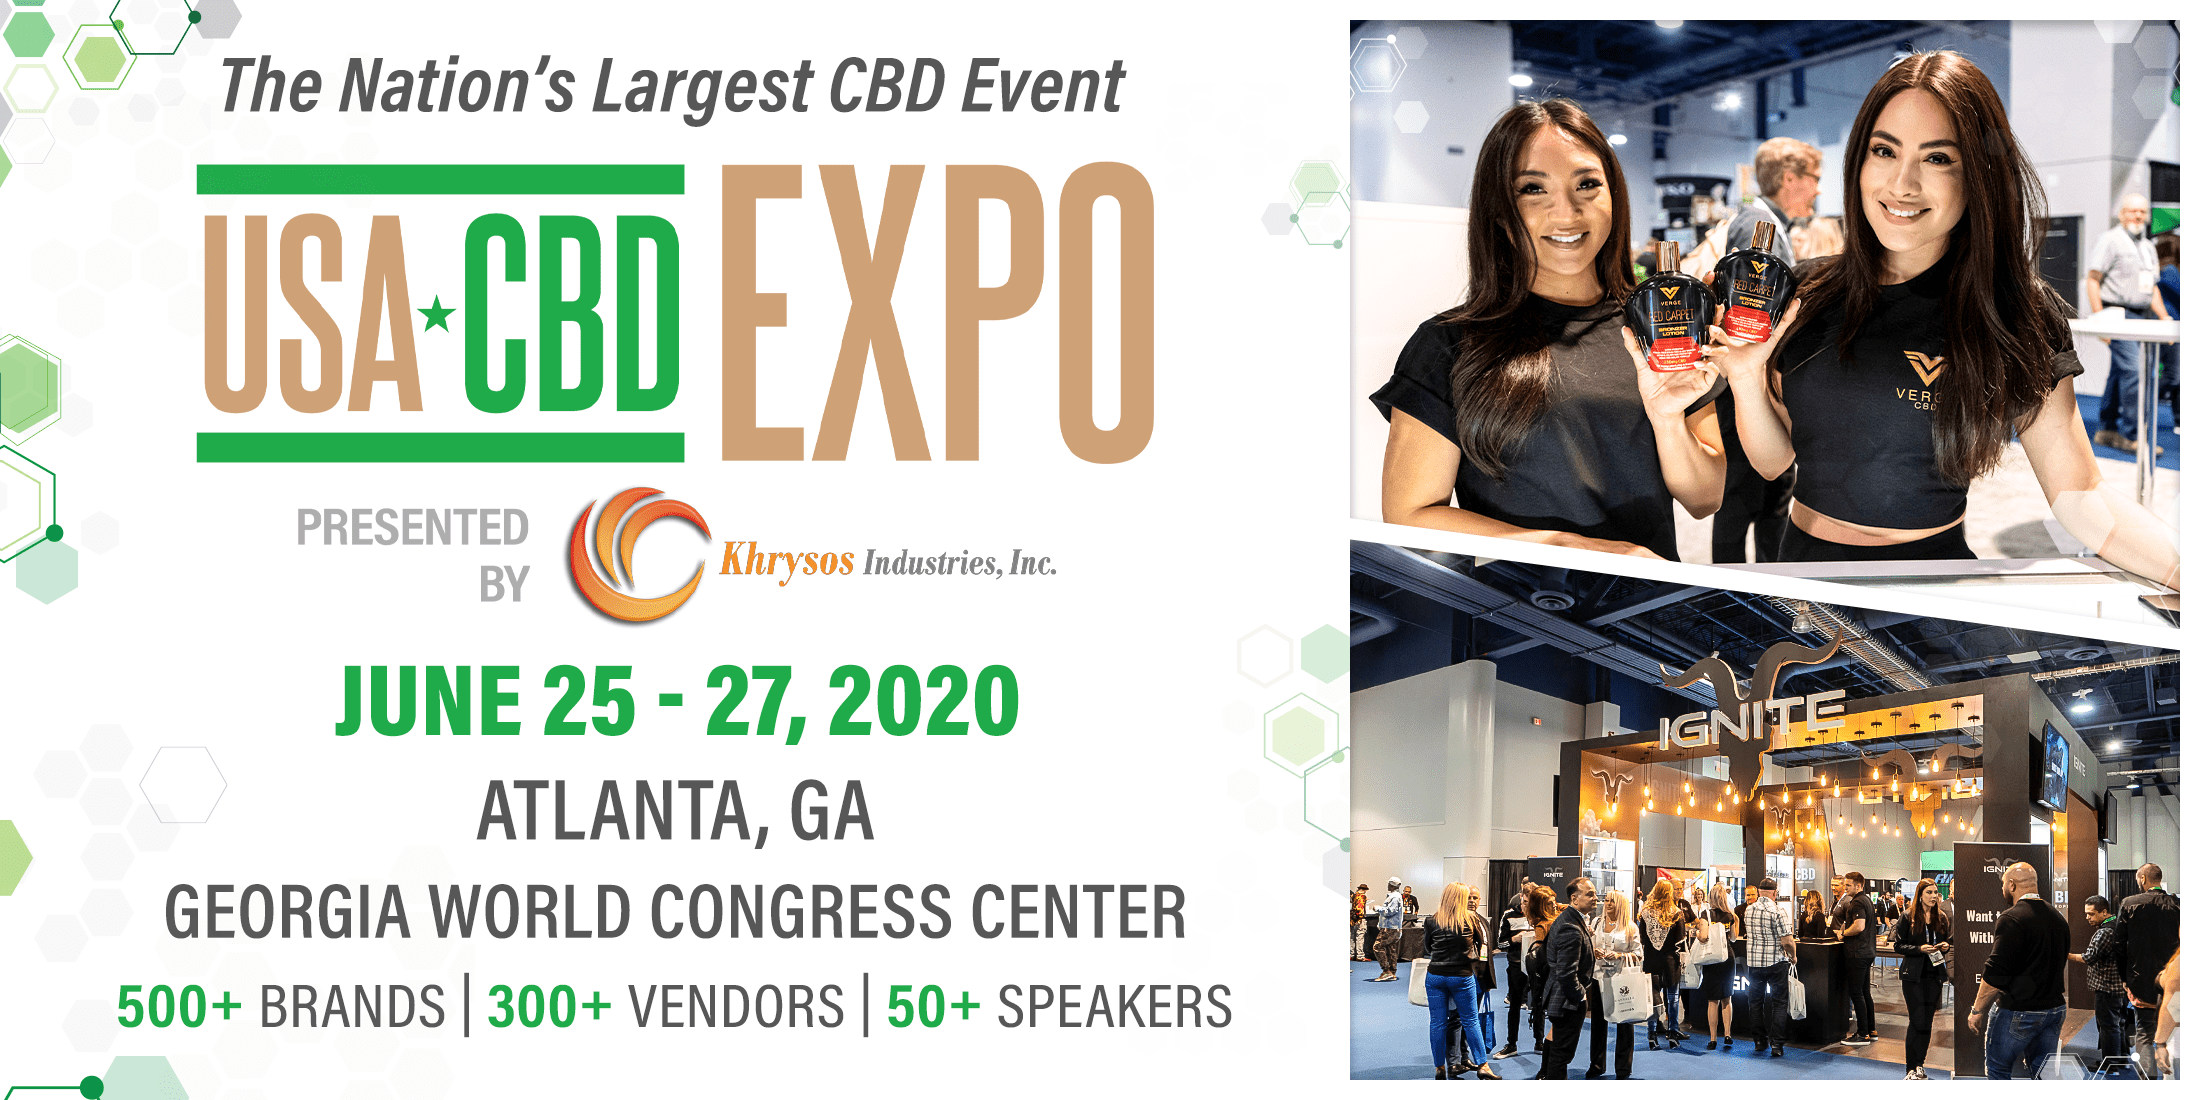 USA CBD Expo Atlanta organized by USA CBD Expo